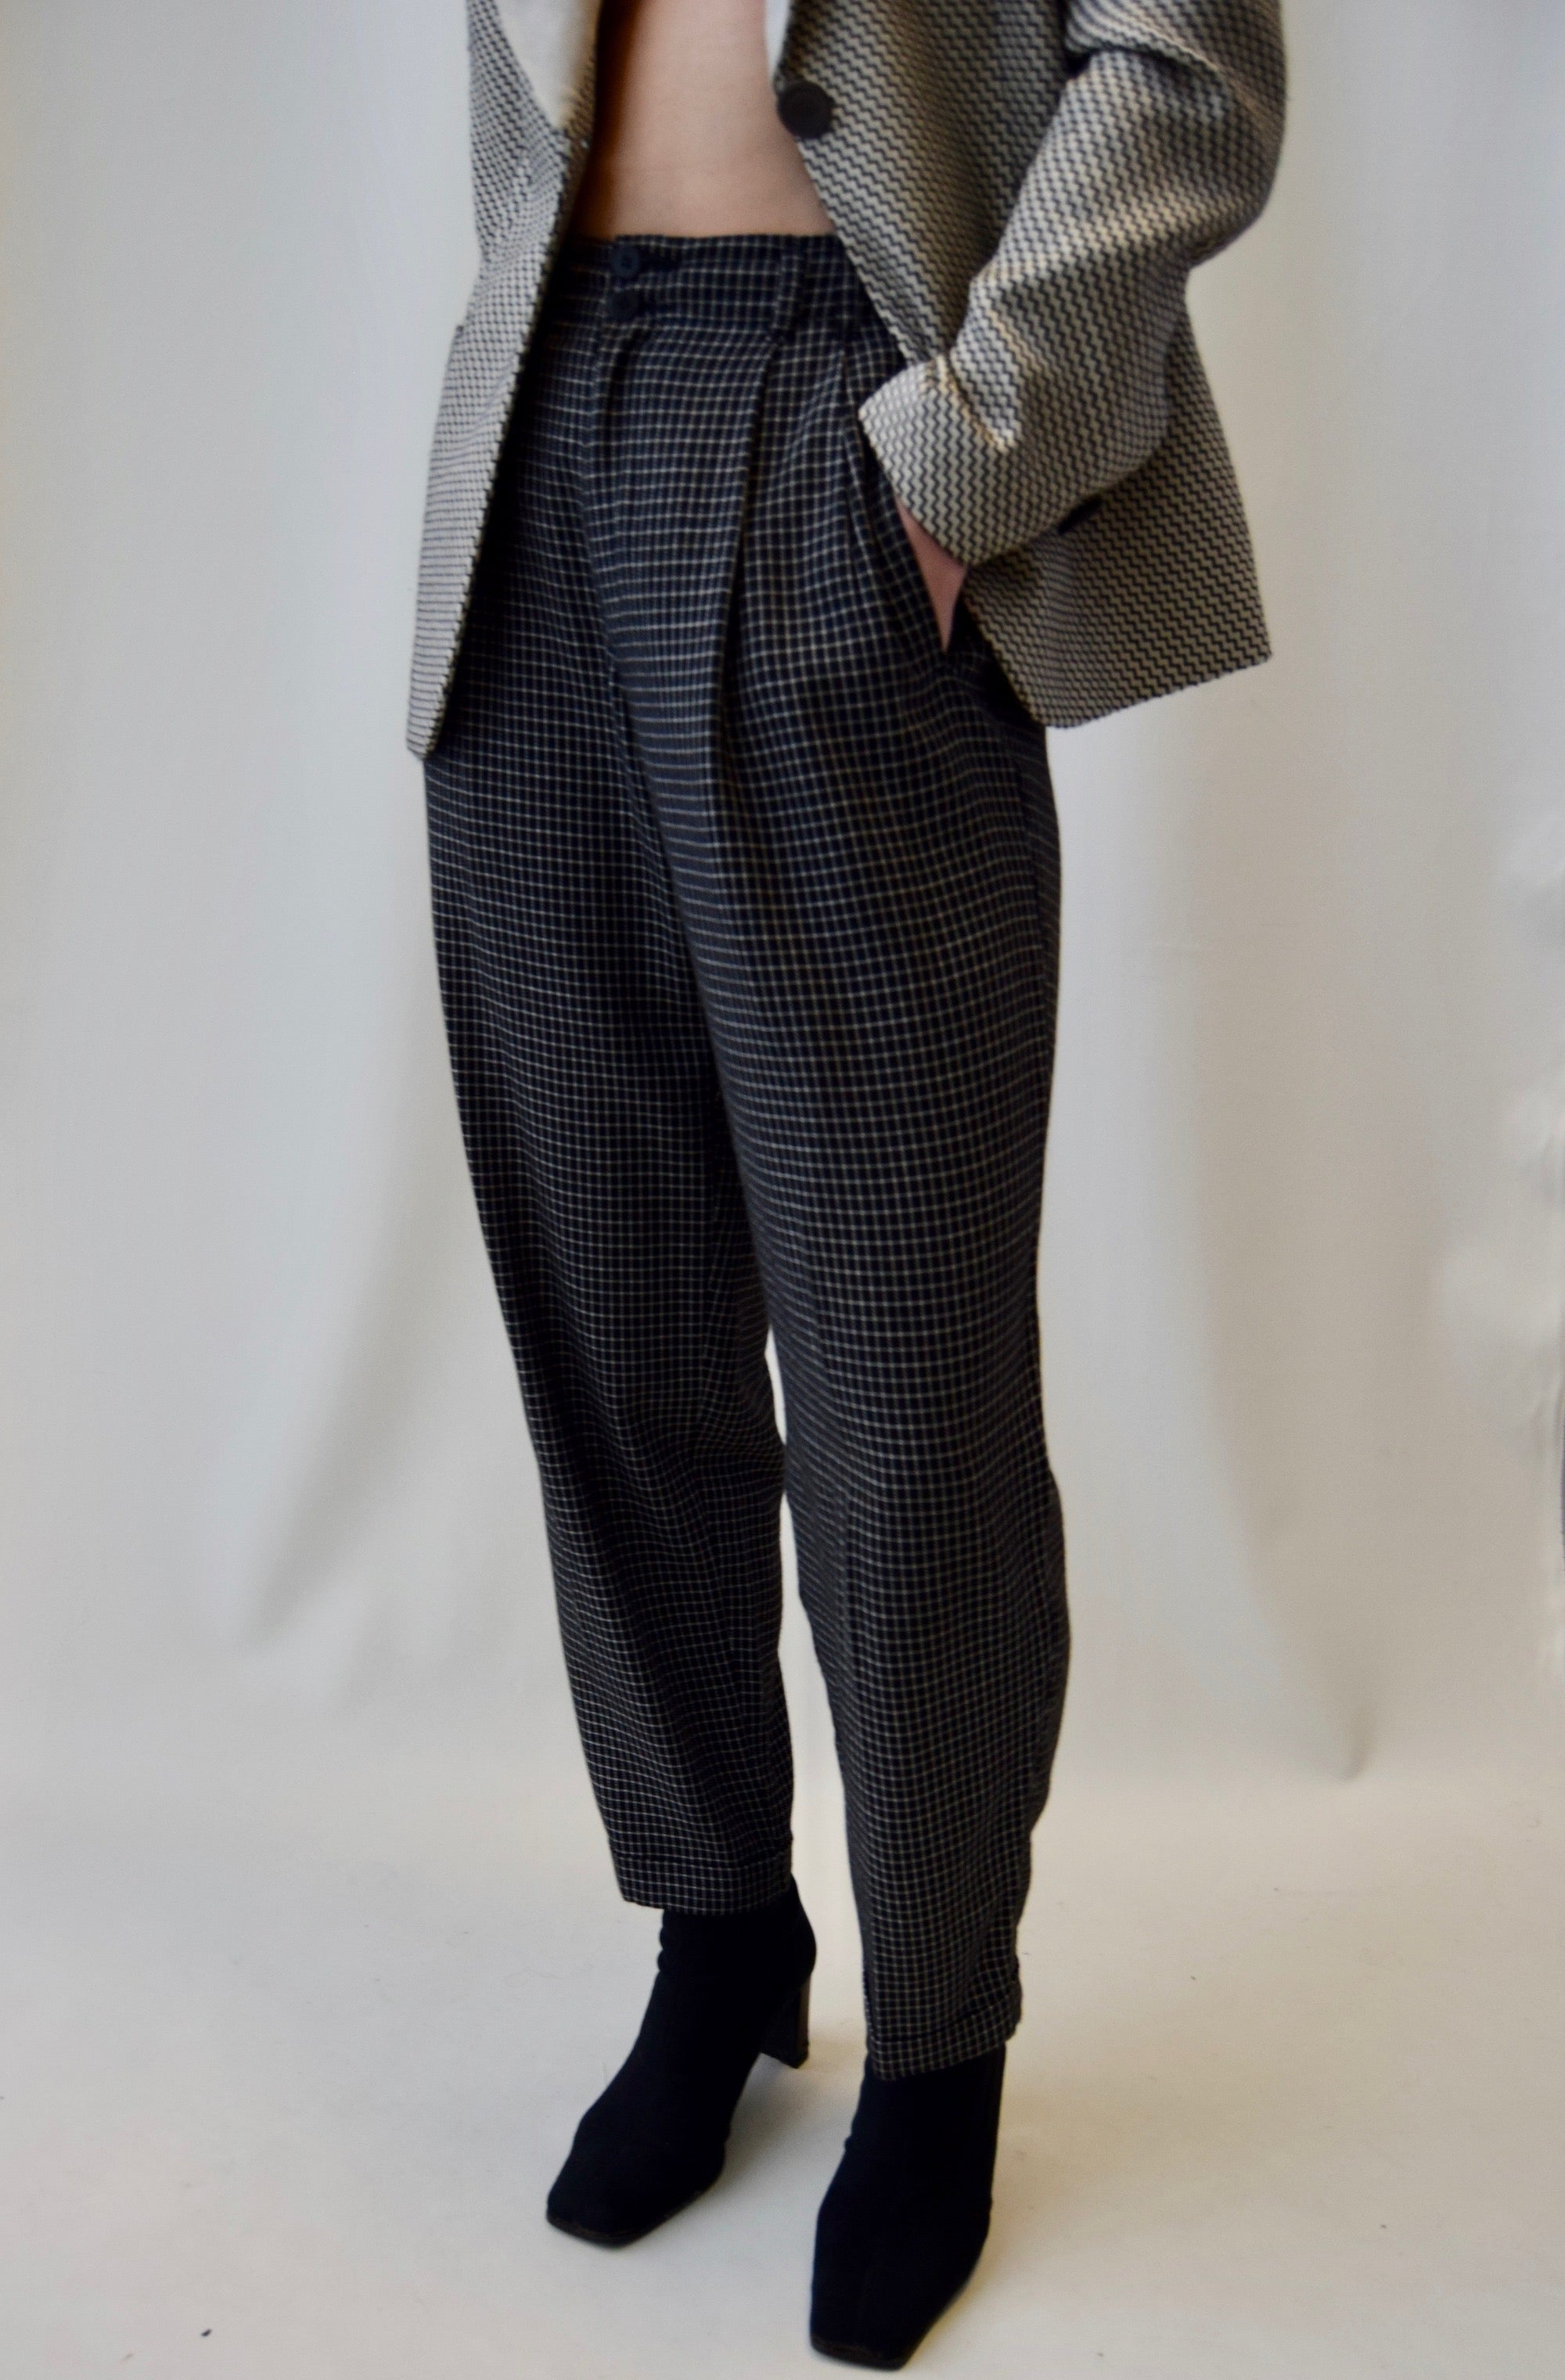 Black & White Grid Patterned Rayon Trousers FREE SHIPPING TO THE U.S.